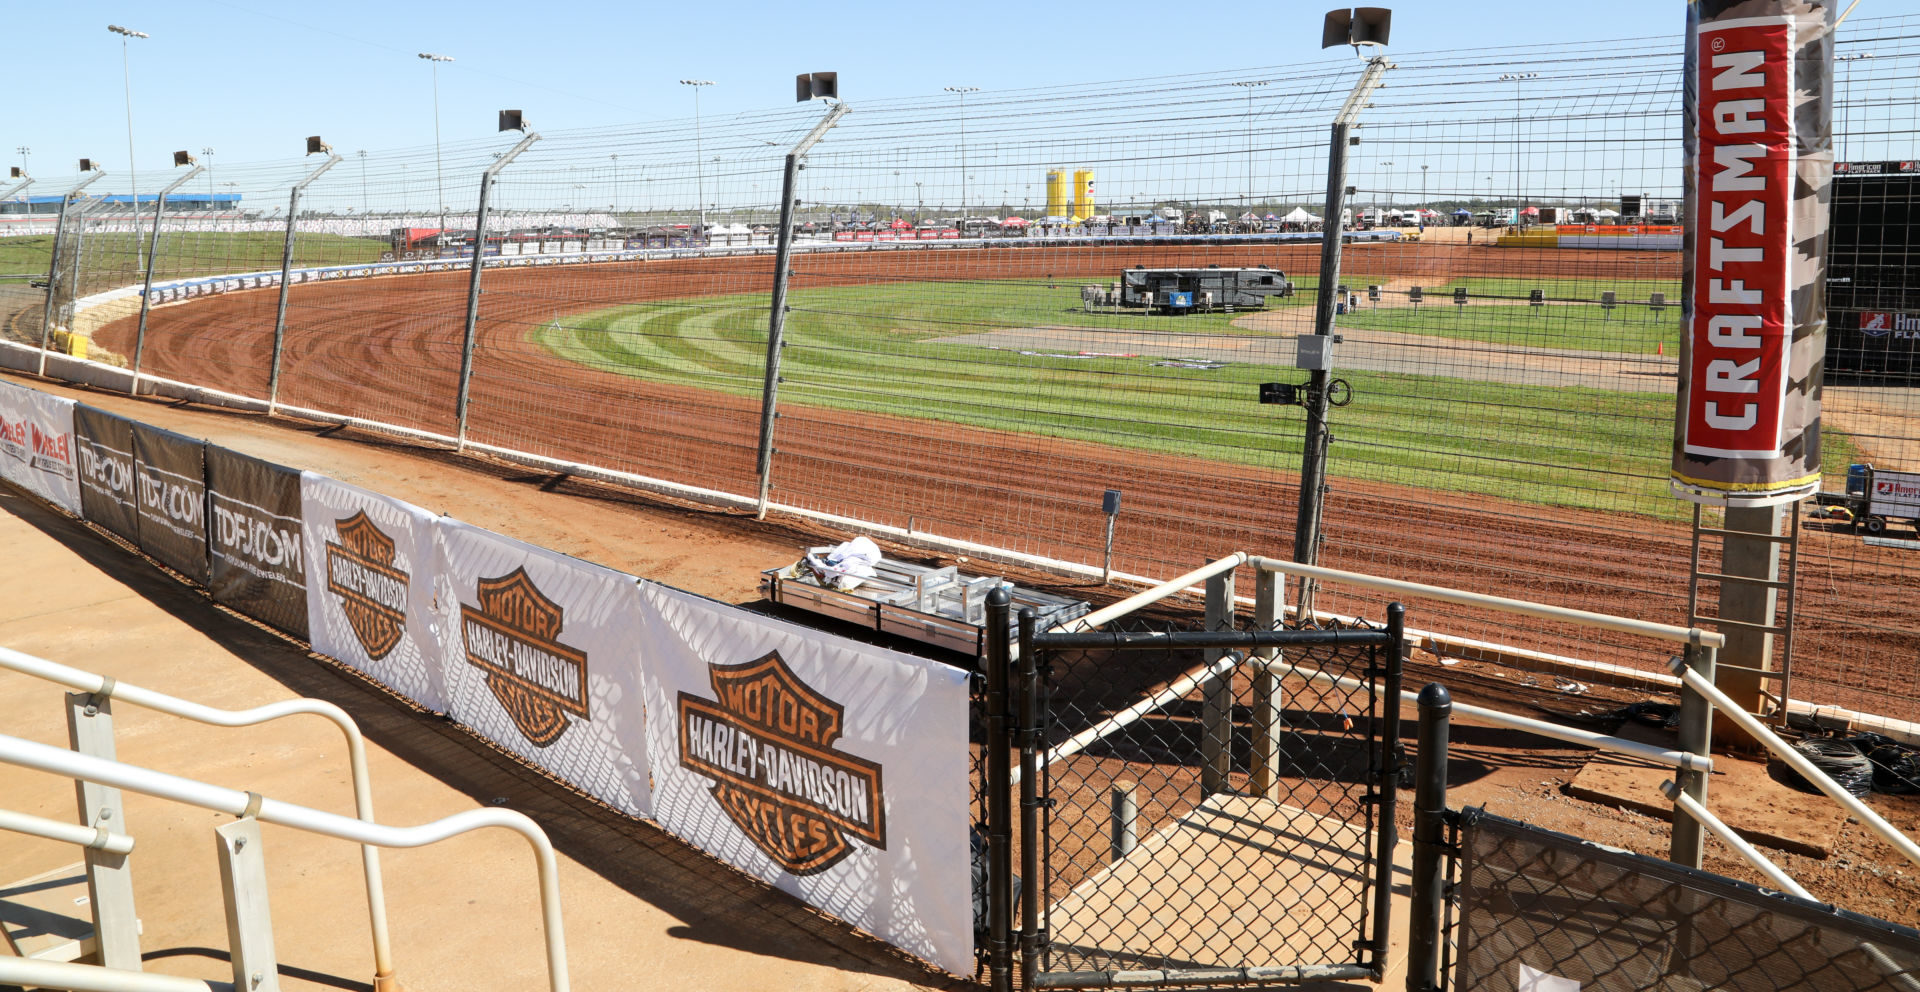 The dirt track at Charlotte Motor Speedway, in Concord, North Carolina. Photo courtesy AFT.